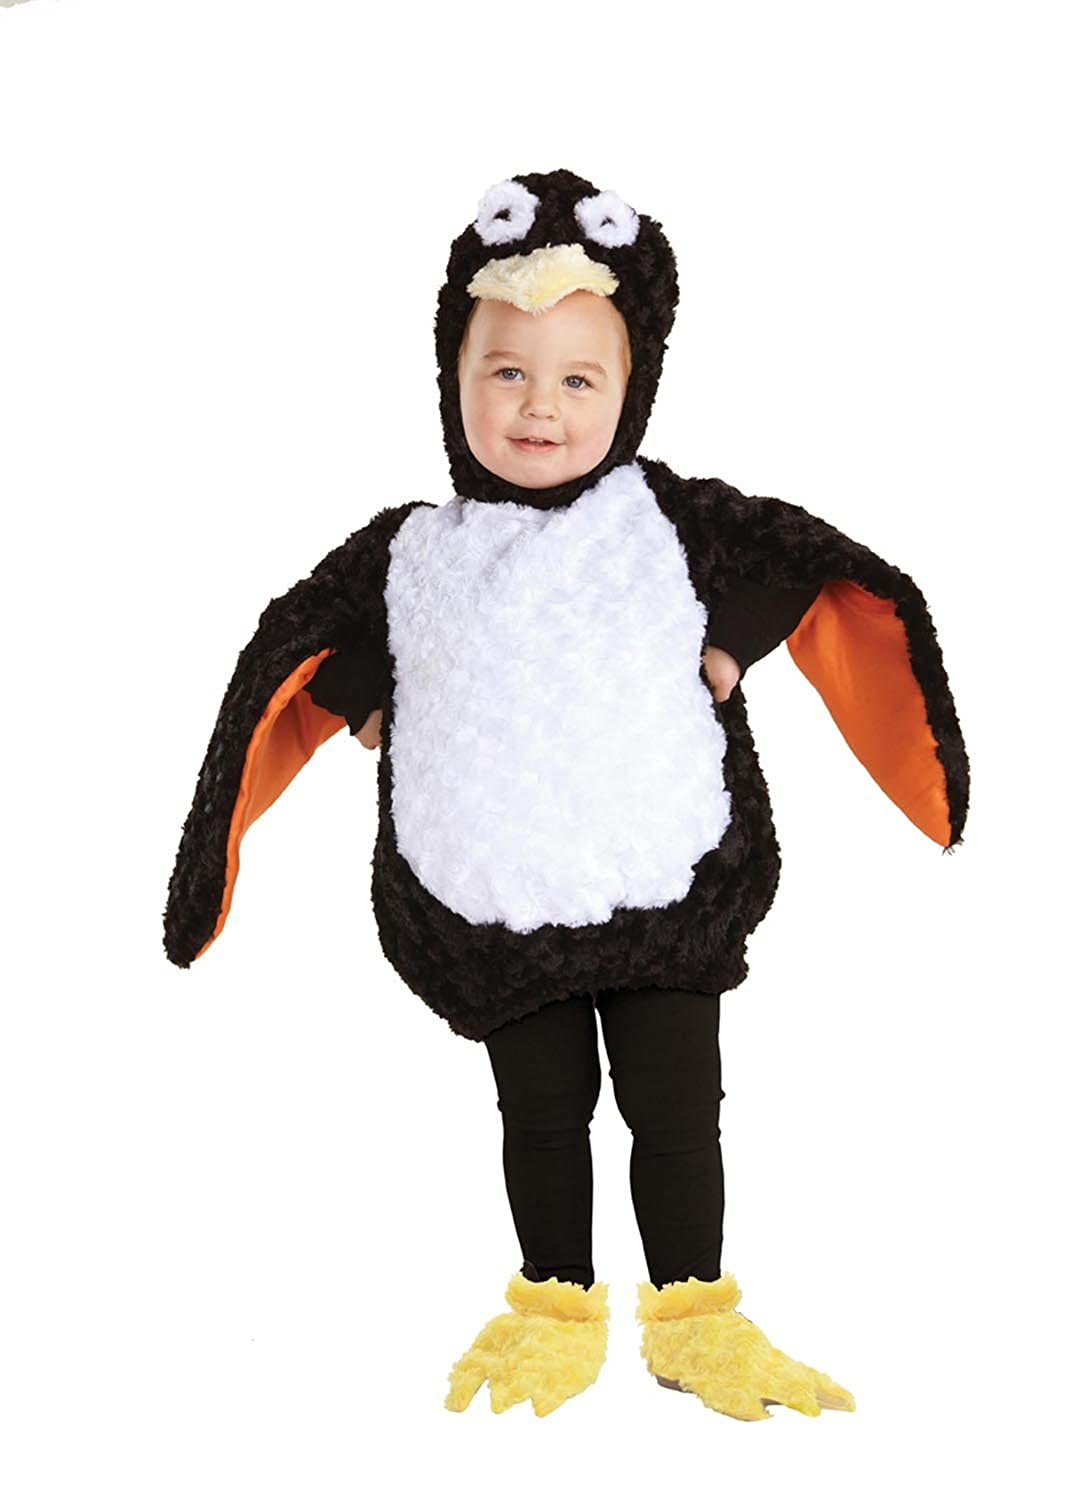 amazoncom underwraps babys penguin belly babies clothing - Infant Penguin Halloween Costume